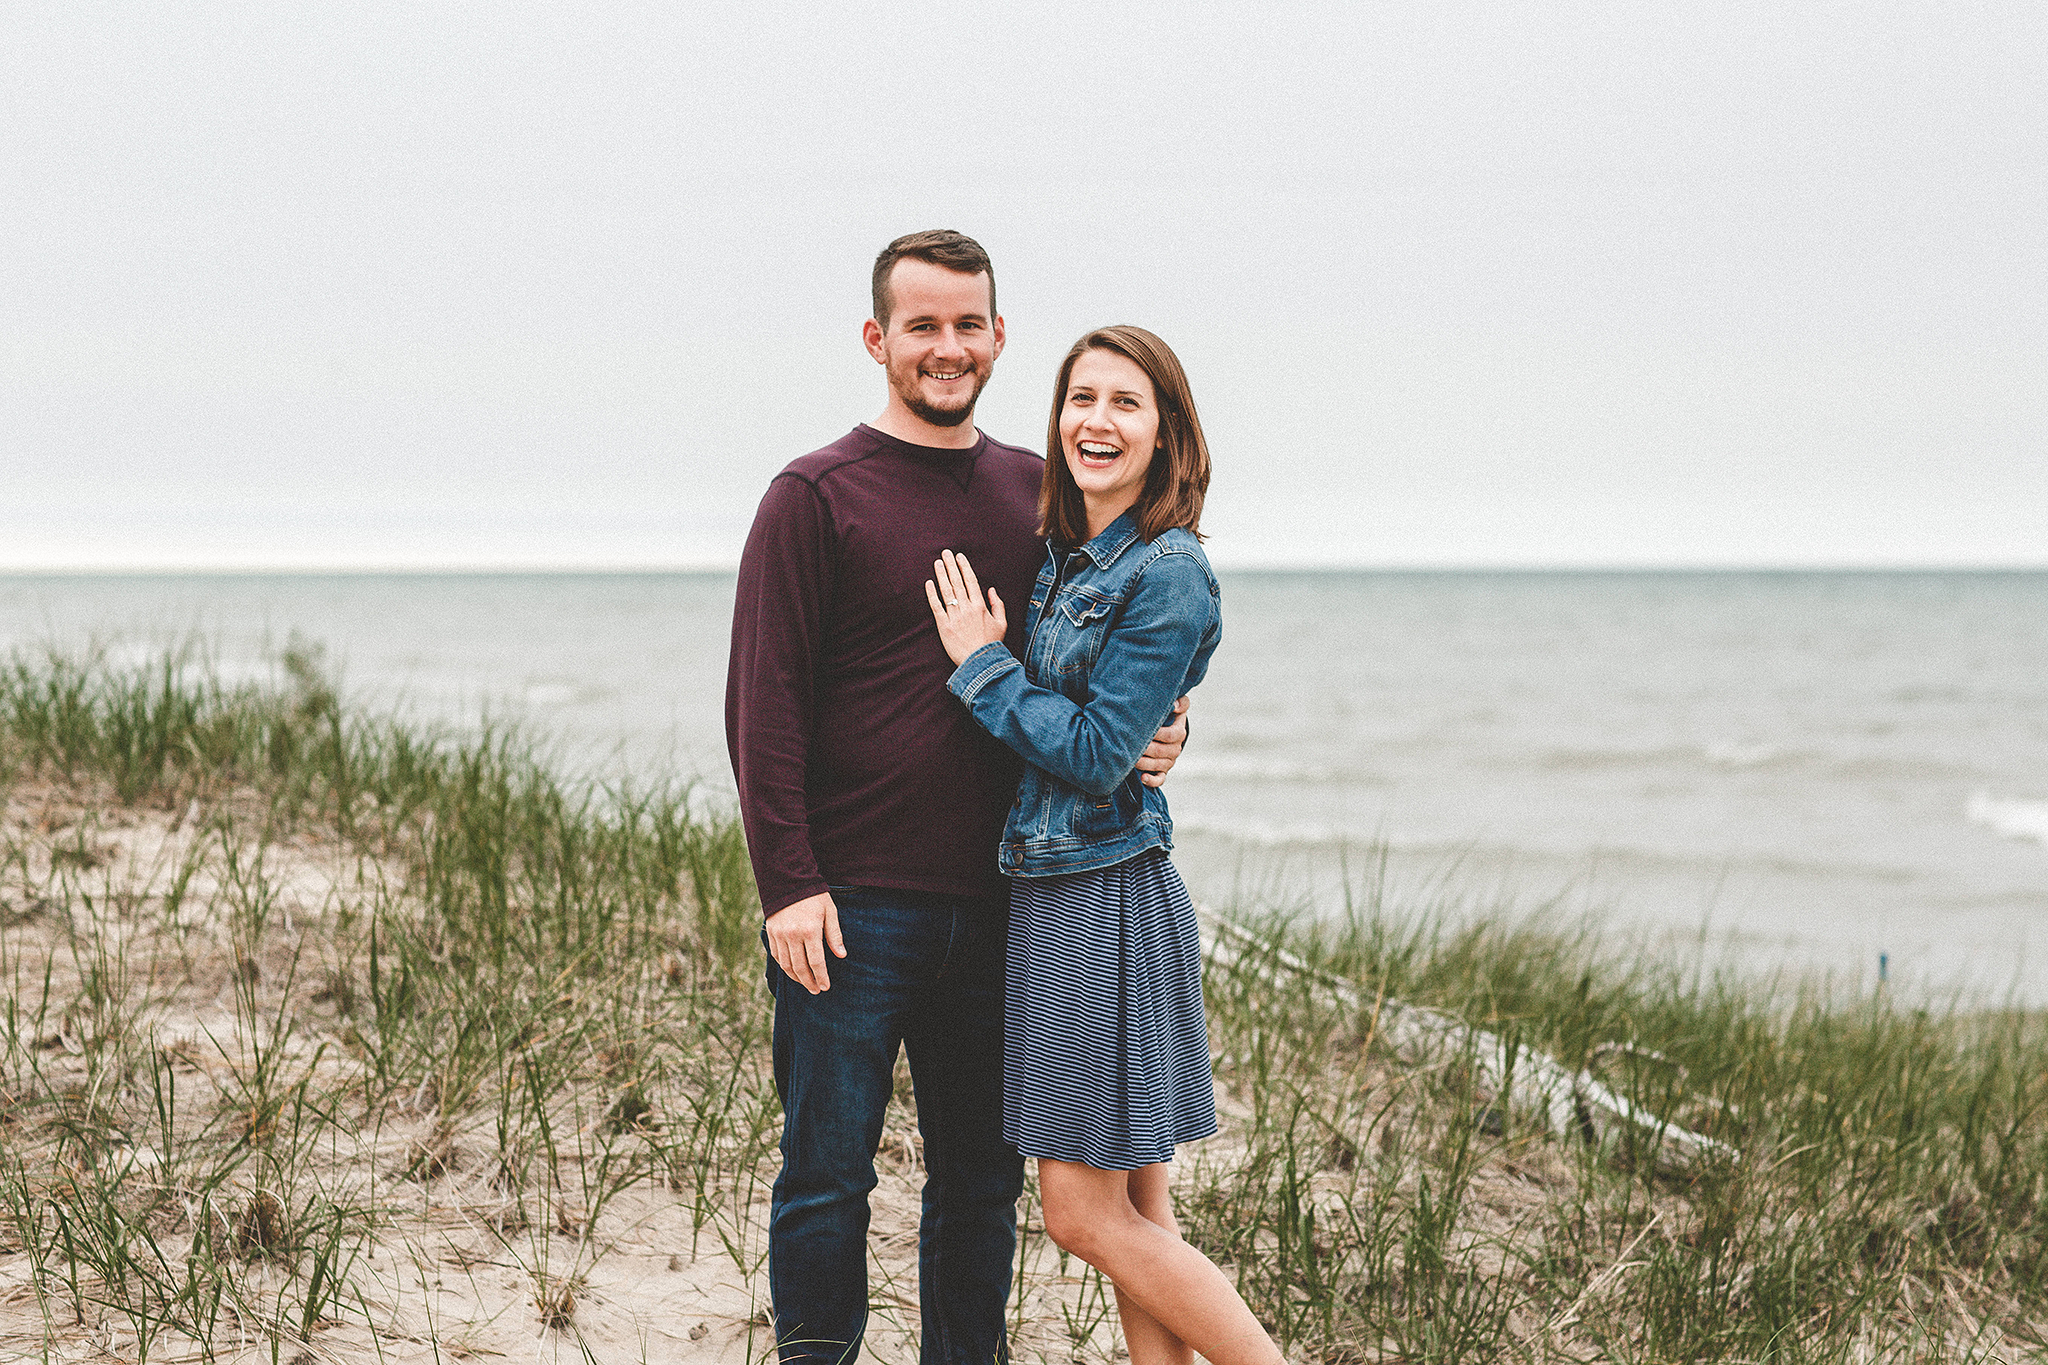 Engagement photo on the beach | Sheboygan, WI Wedding & Engagement photographer | Chrissy Deming Photography